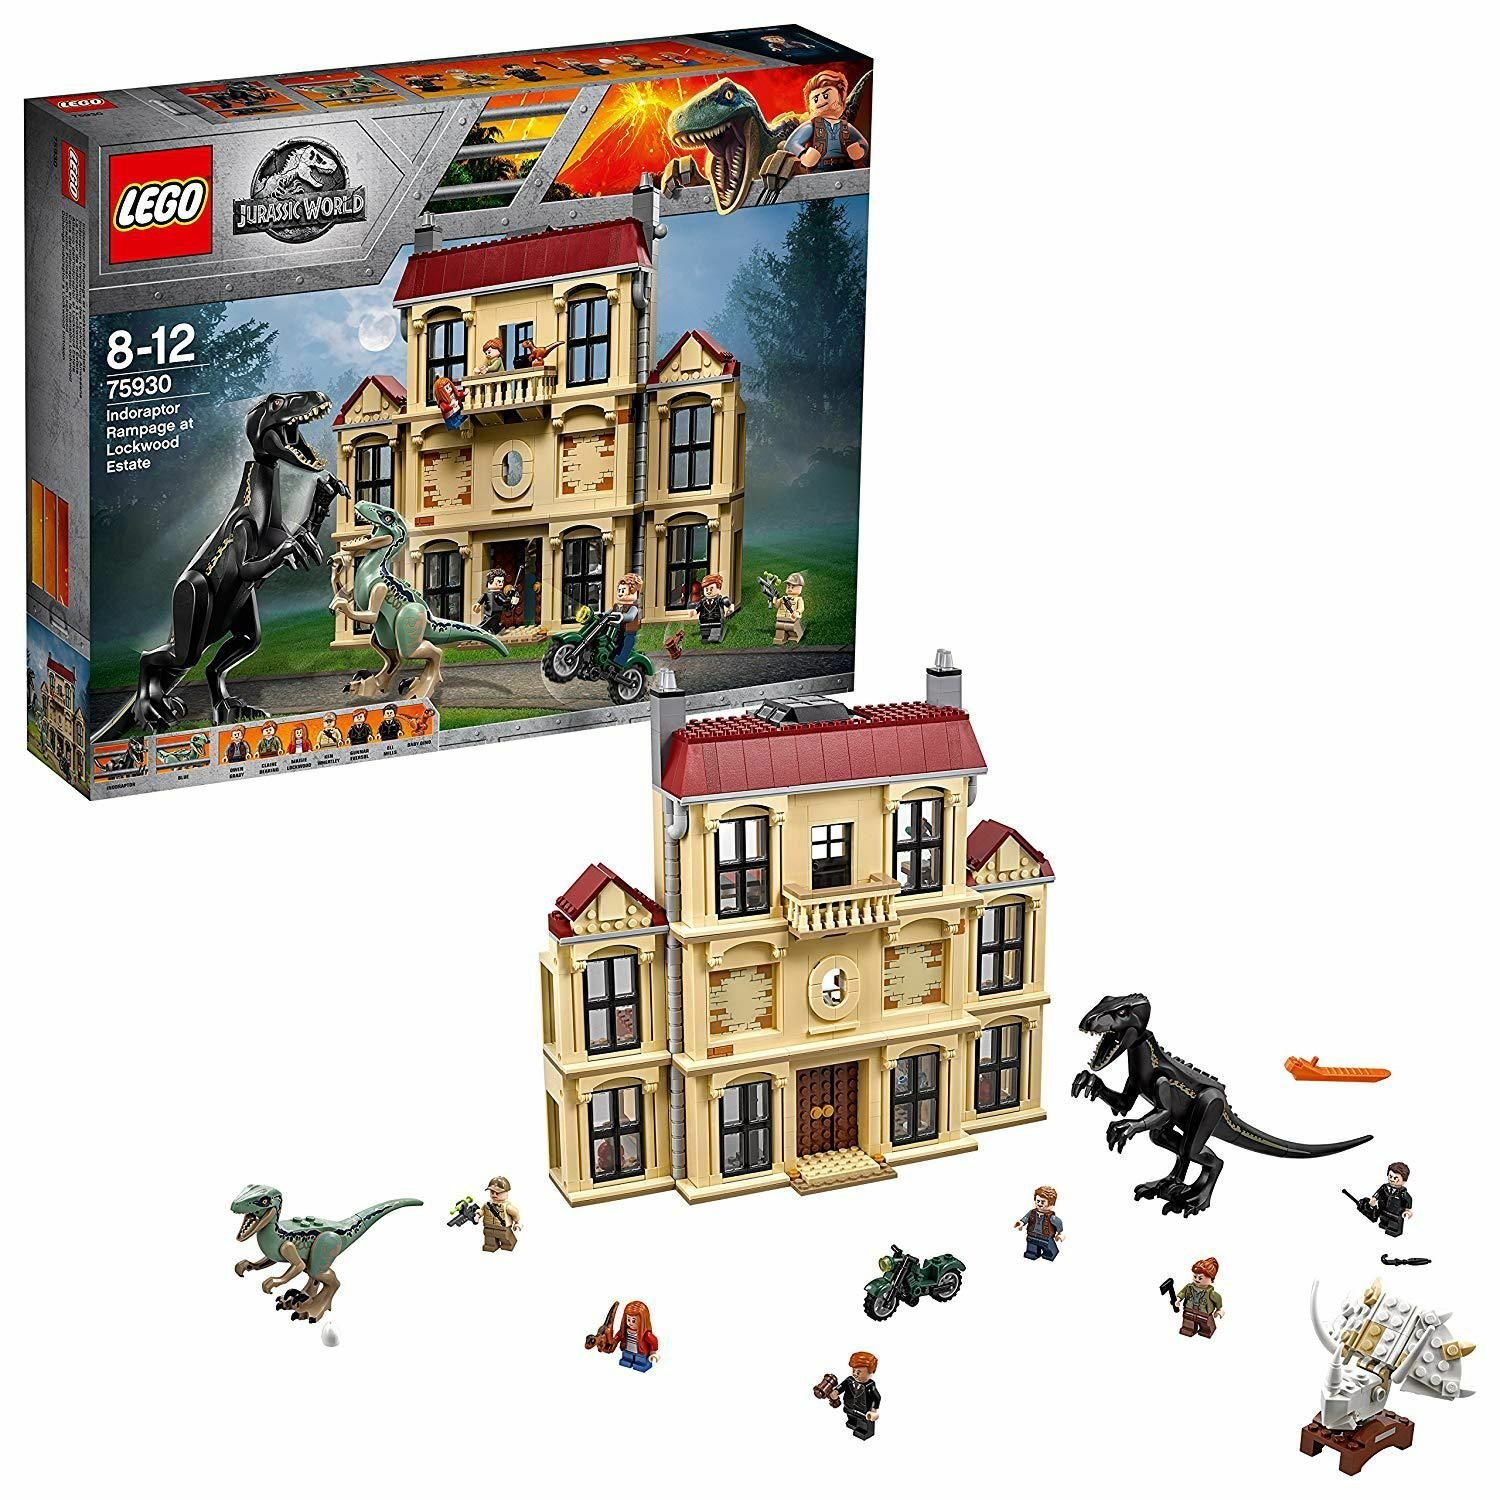 LEGO Jurassic World Indoraptor Rampage Dinosaur Toy - 75930